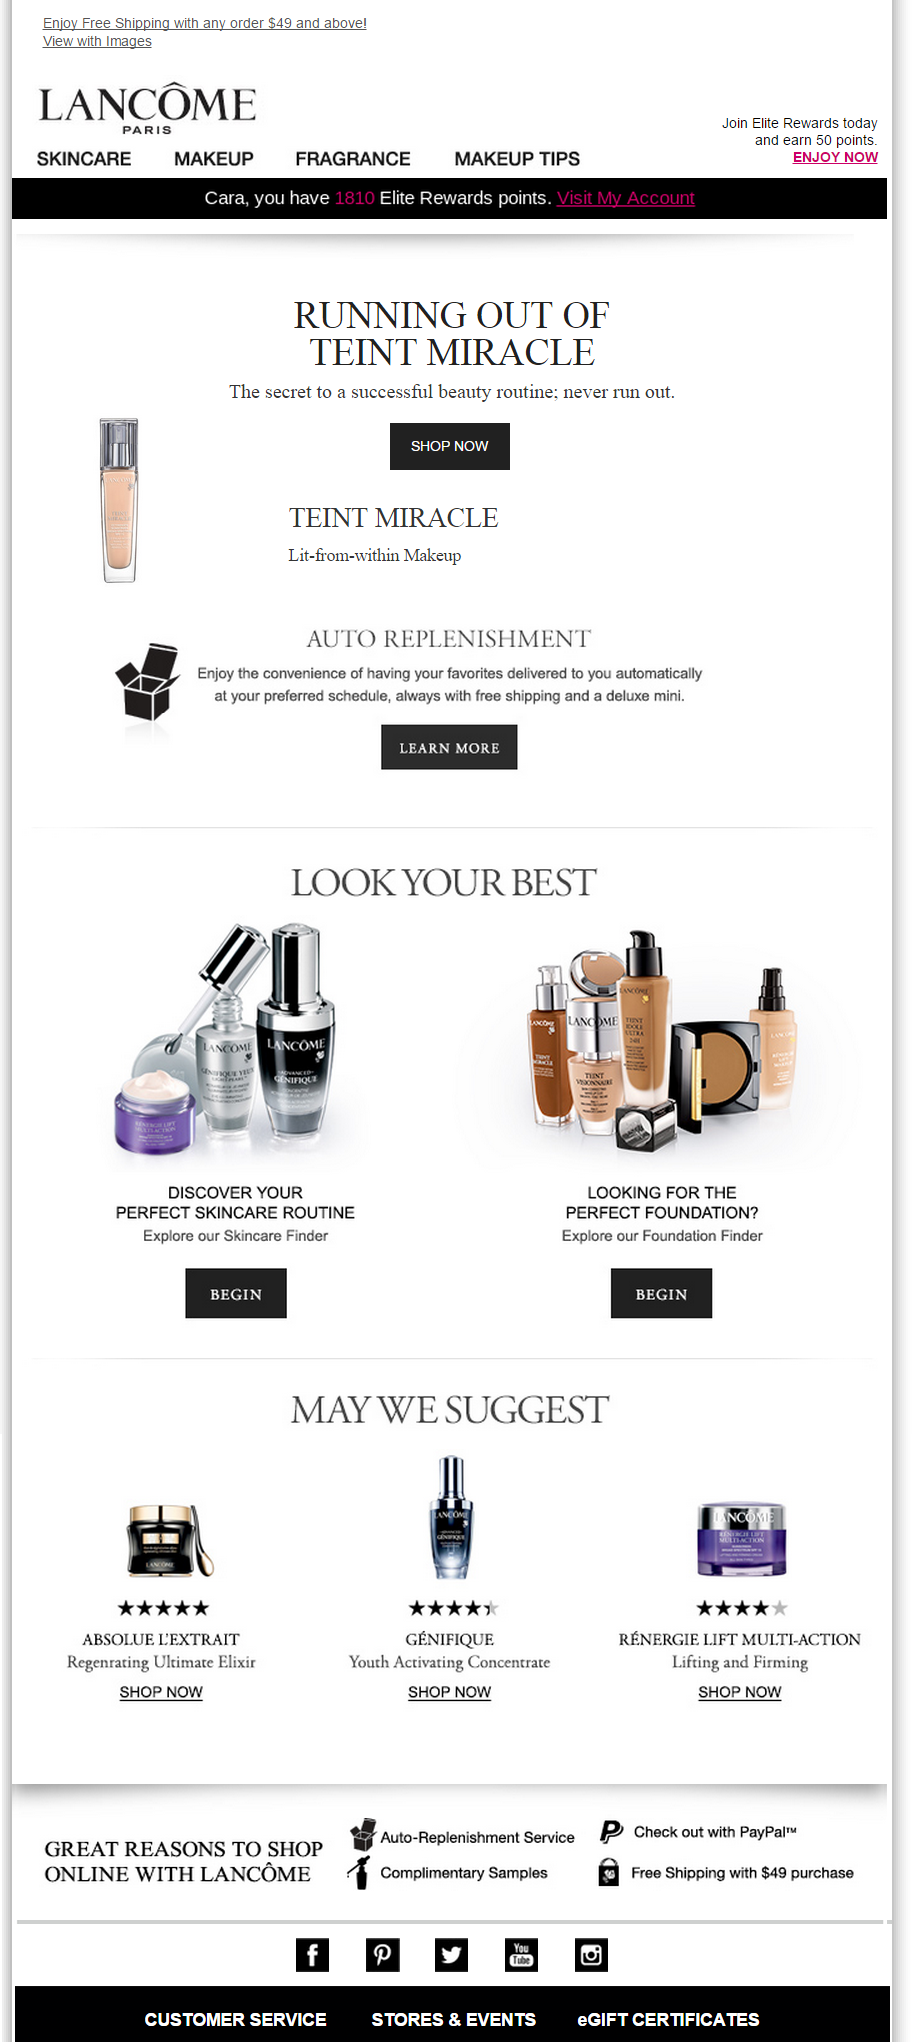 Subject Line Running On Low Replenishment Trigger From Lancome